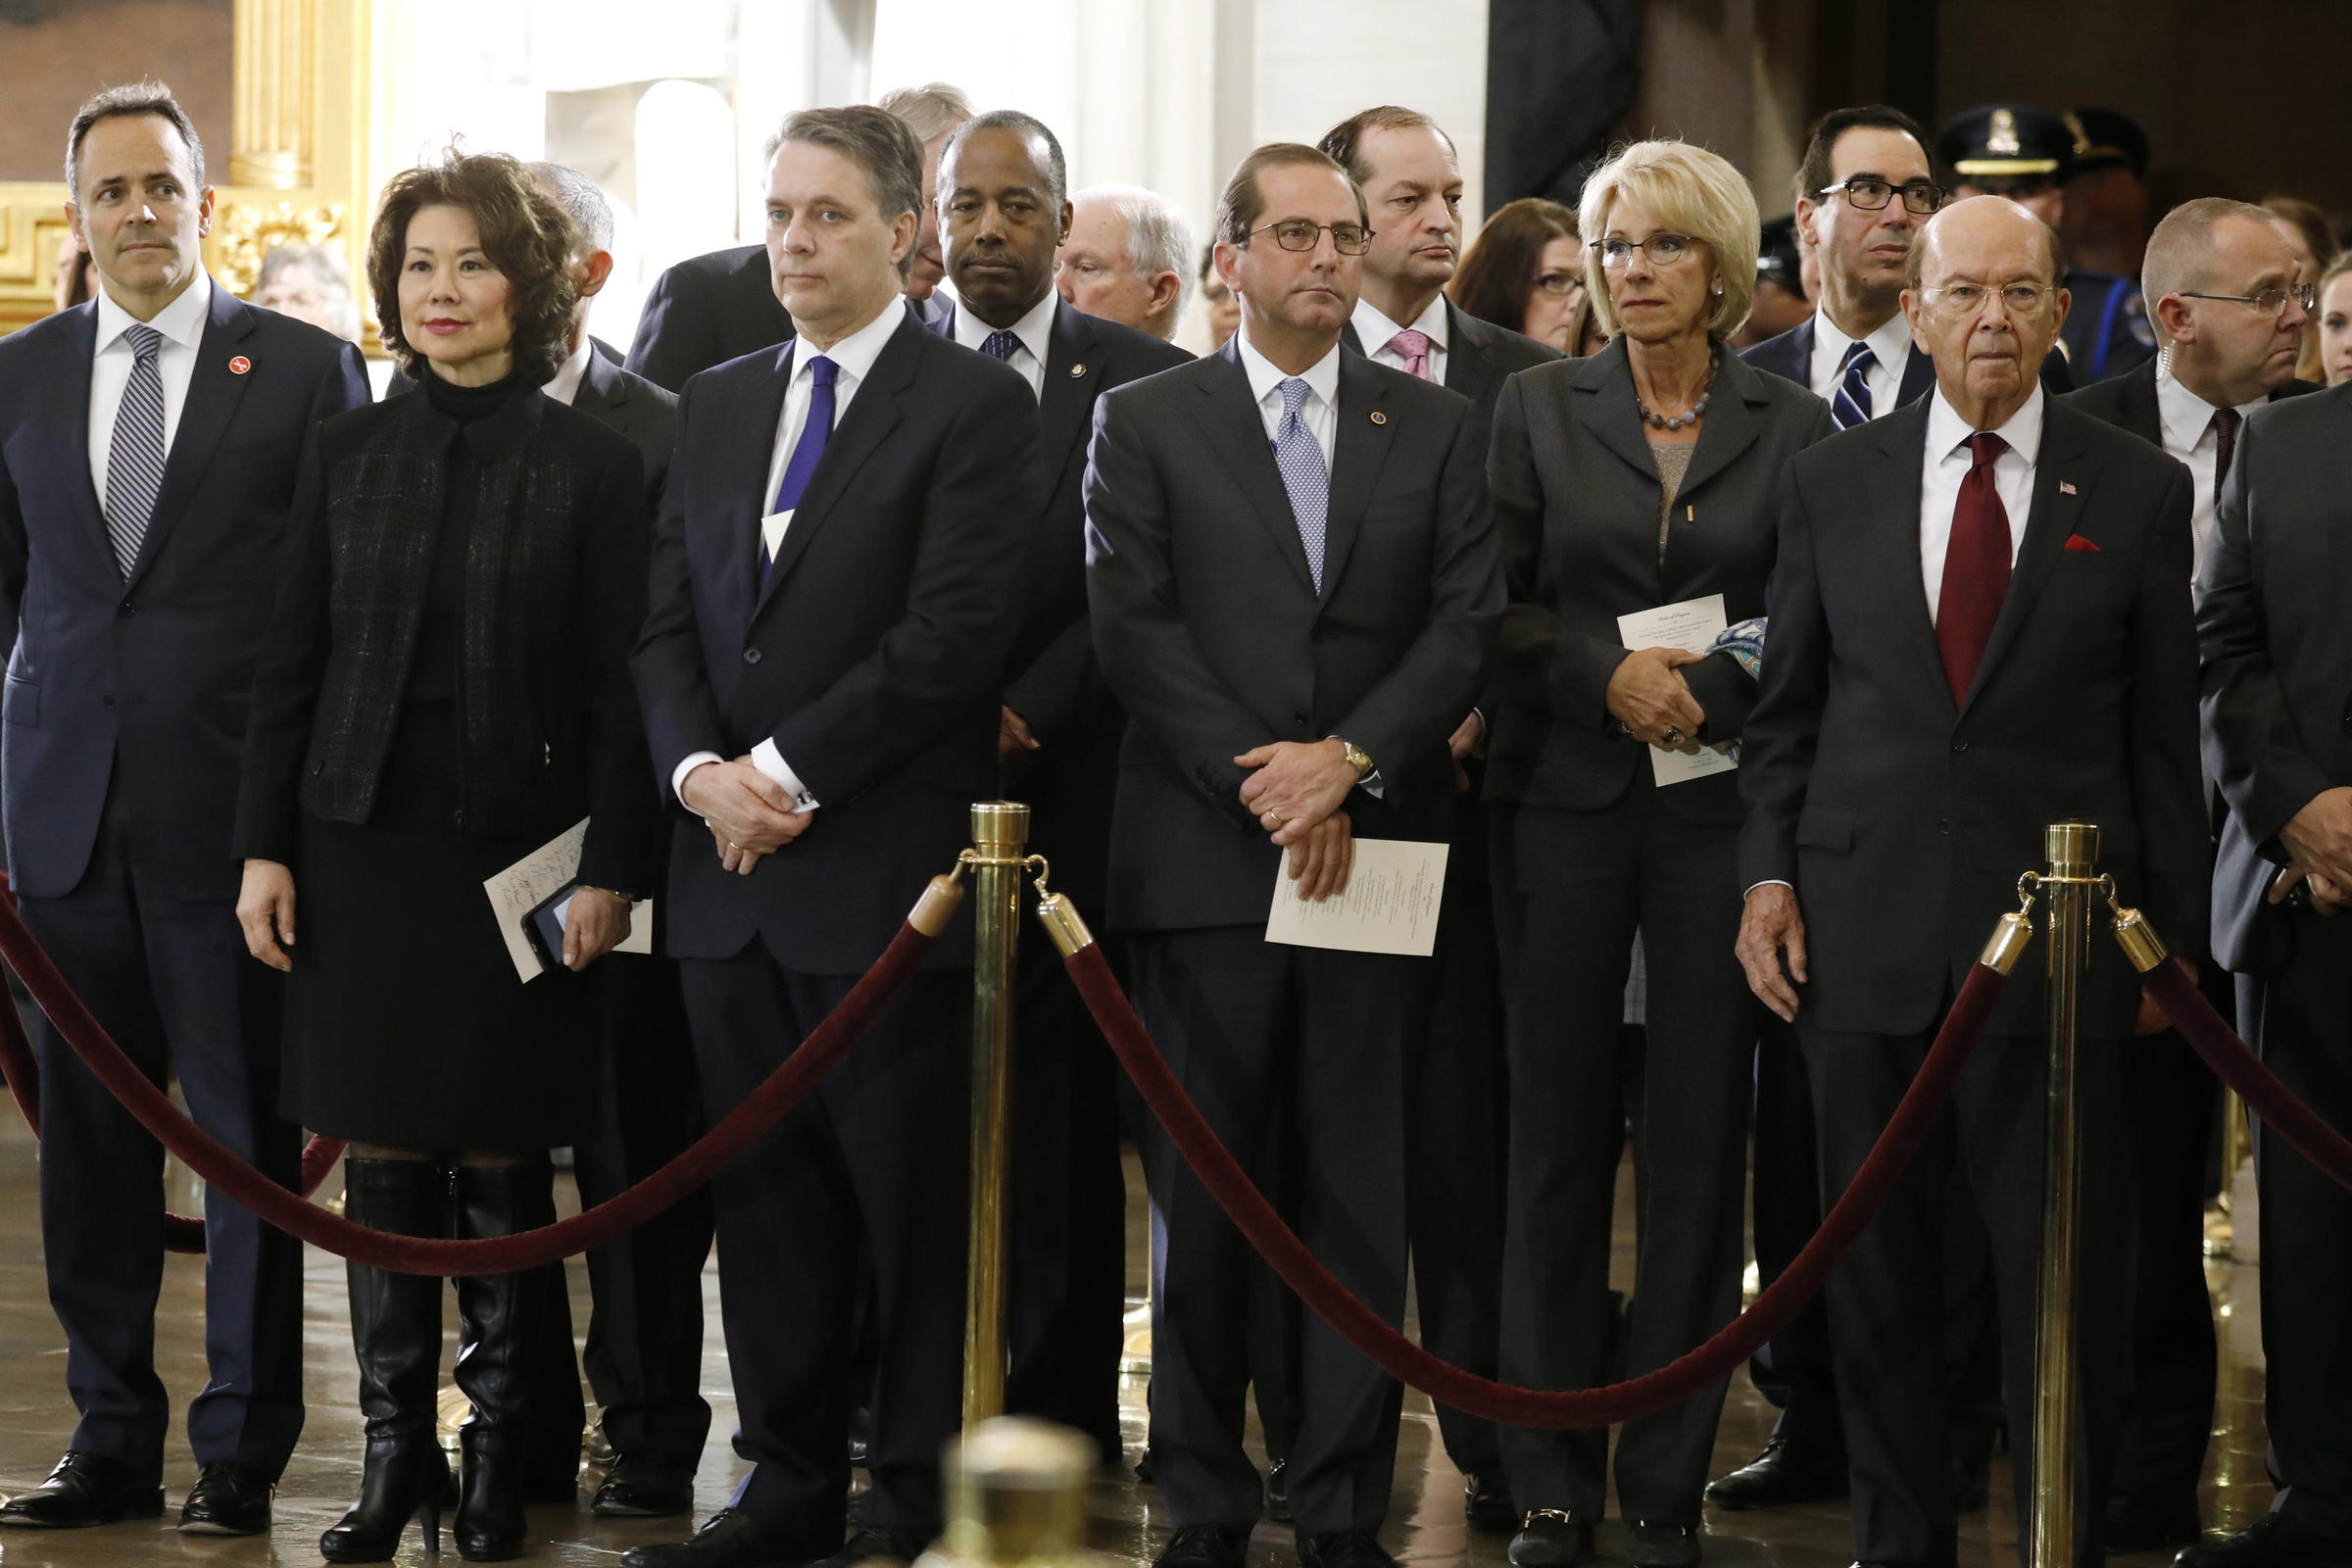 Trump Administration Cabinet Secretaries Attend Ceremonies For Late  Evangelist Billy Graham At The U.S. Capitol On